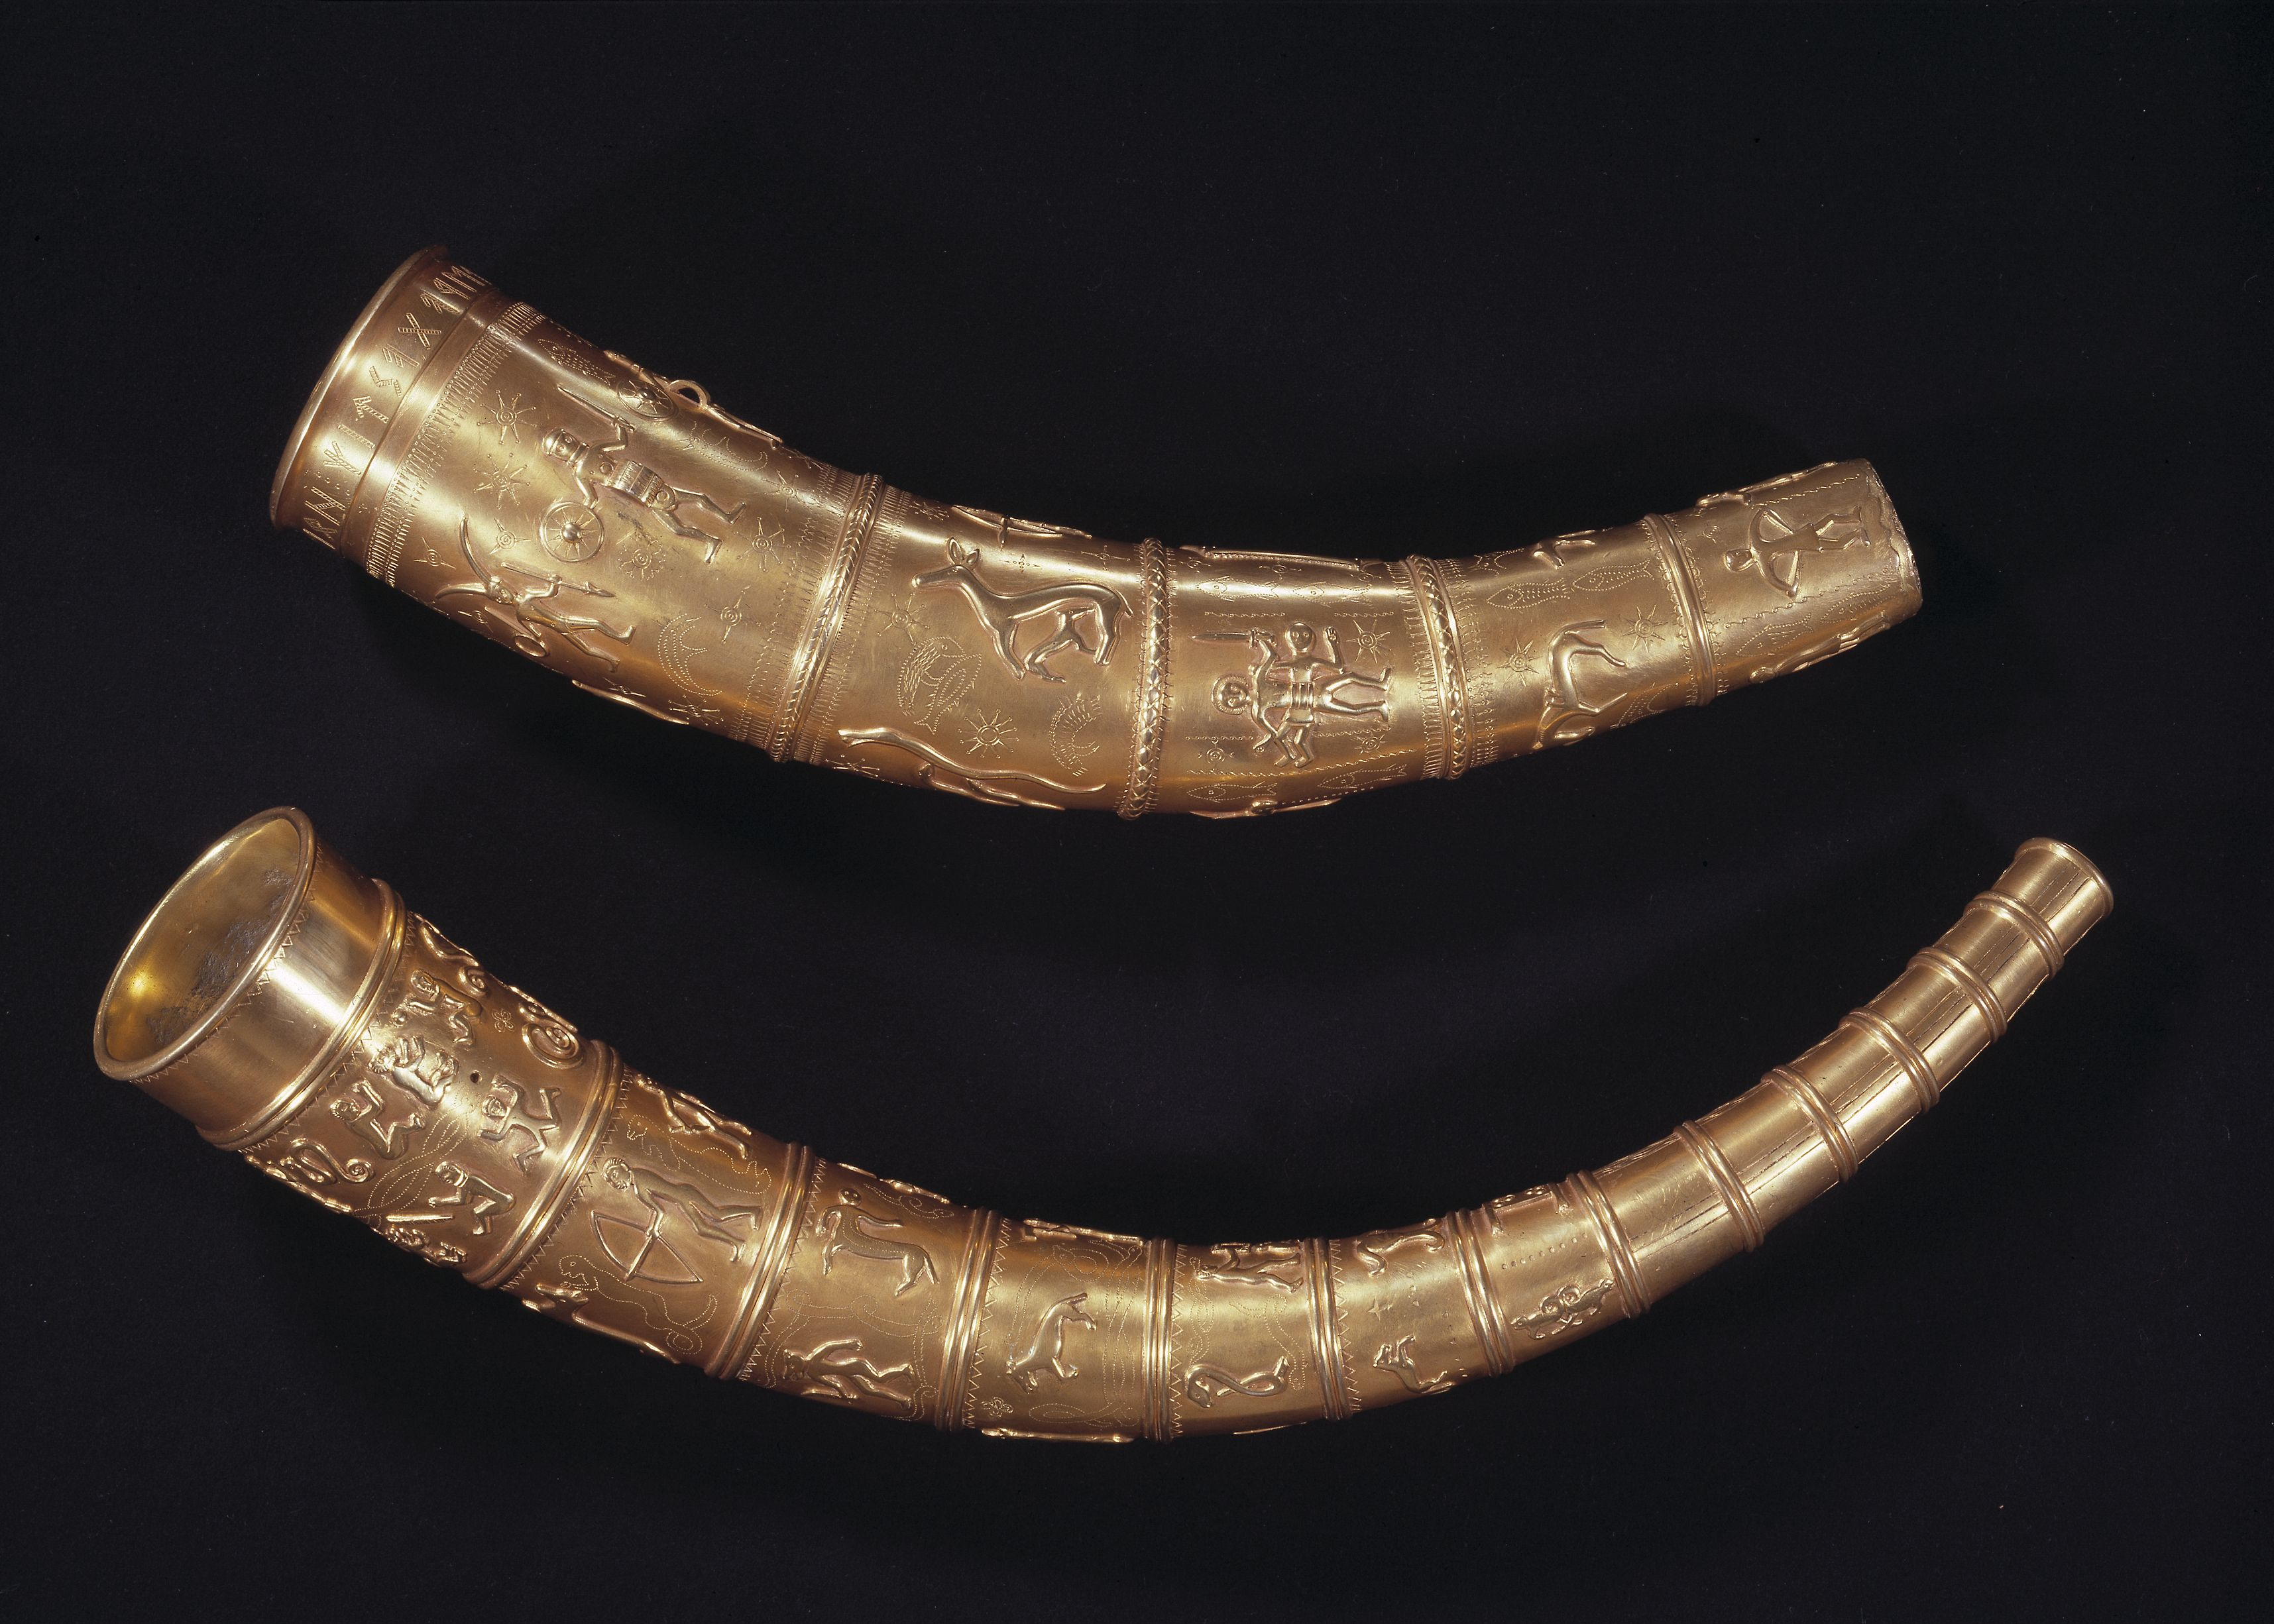 Copies of the two golden horns of Gallehus from around the 4th century in the National Museum of Denmark.